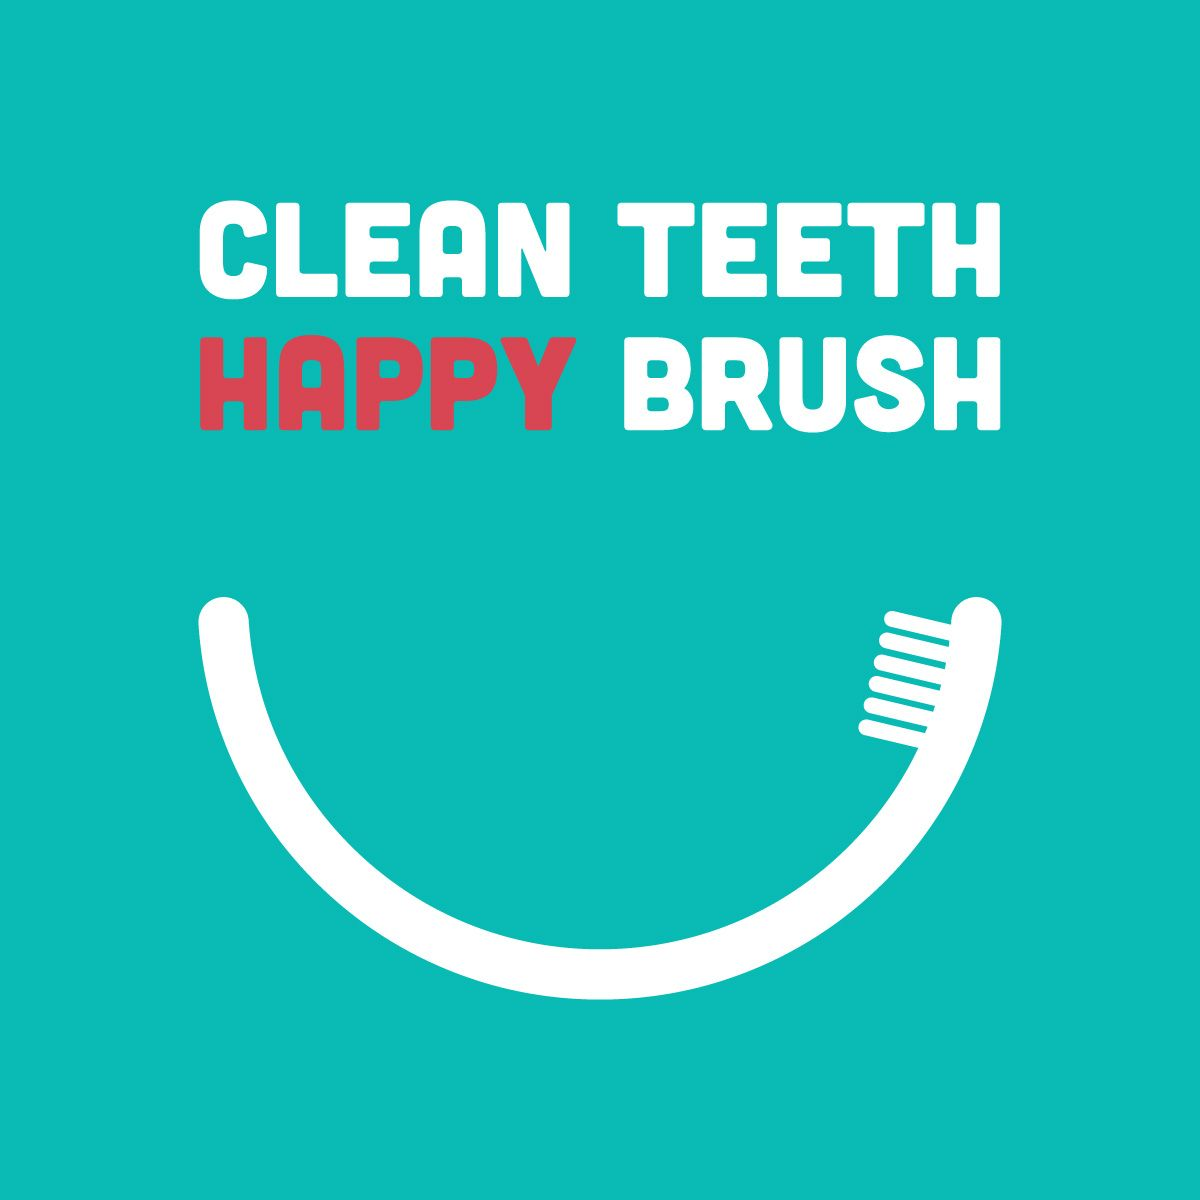 Your Toothbrush Loves To Do Its Job Keep Your Mouth And Brush